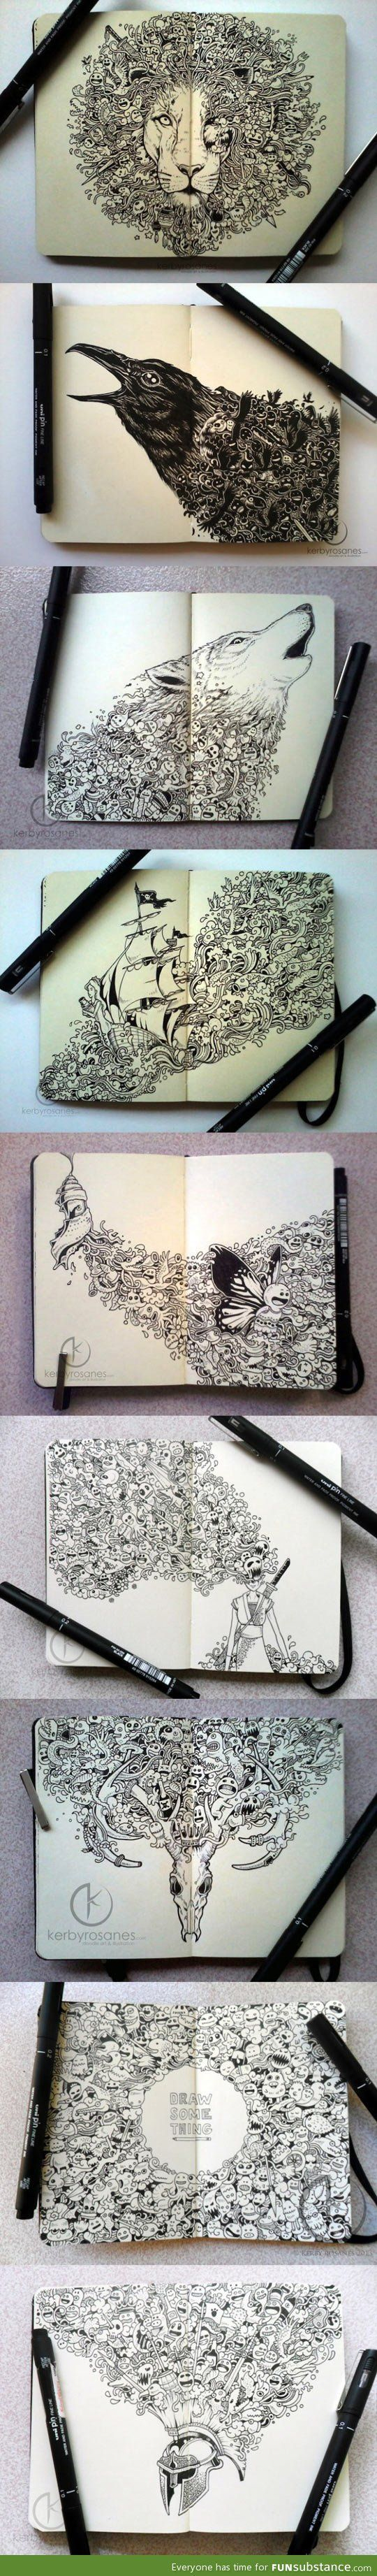 Incredible moleskine drawings by Kerby Rosanes. Click for more.